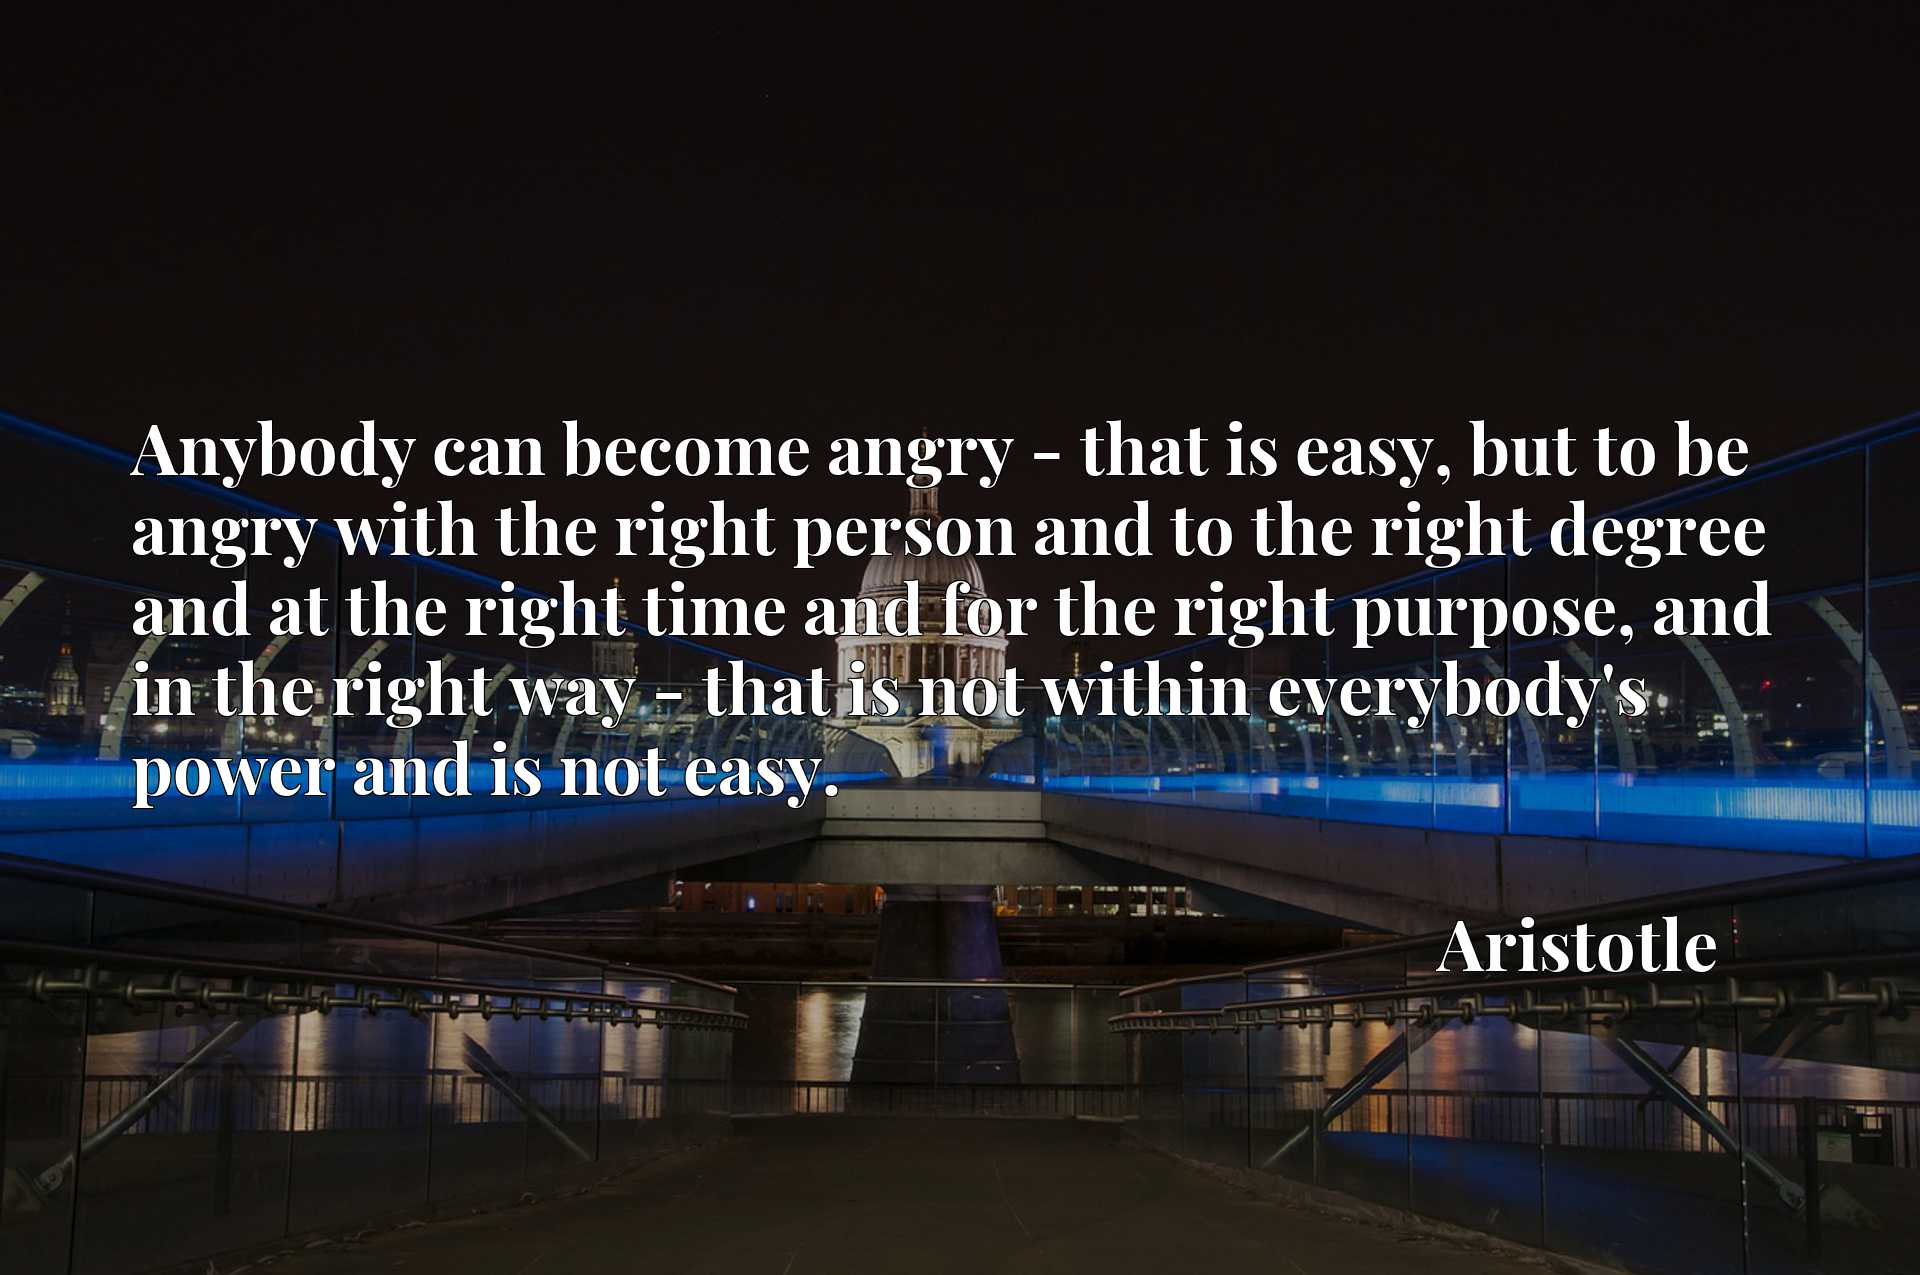 Anybody can become angry - that is easy, but to be angry with the right person and to the right degree and at the right time and for the right purpose, and in the right way - that is not within everybody's power and is not easy.